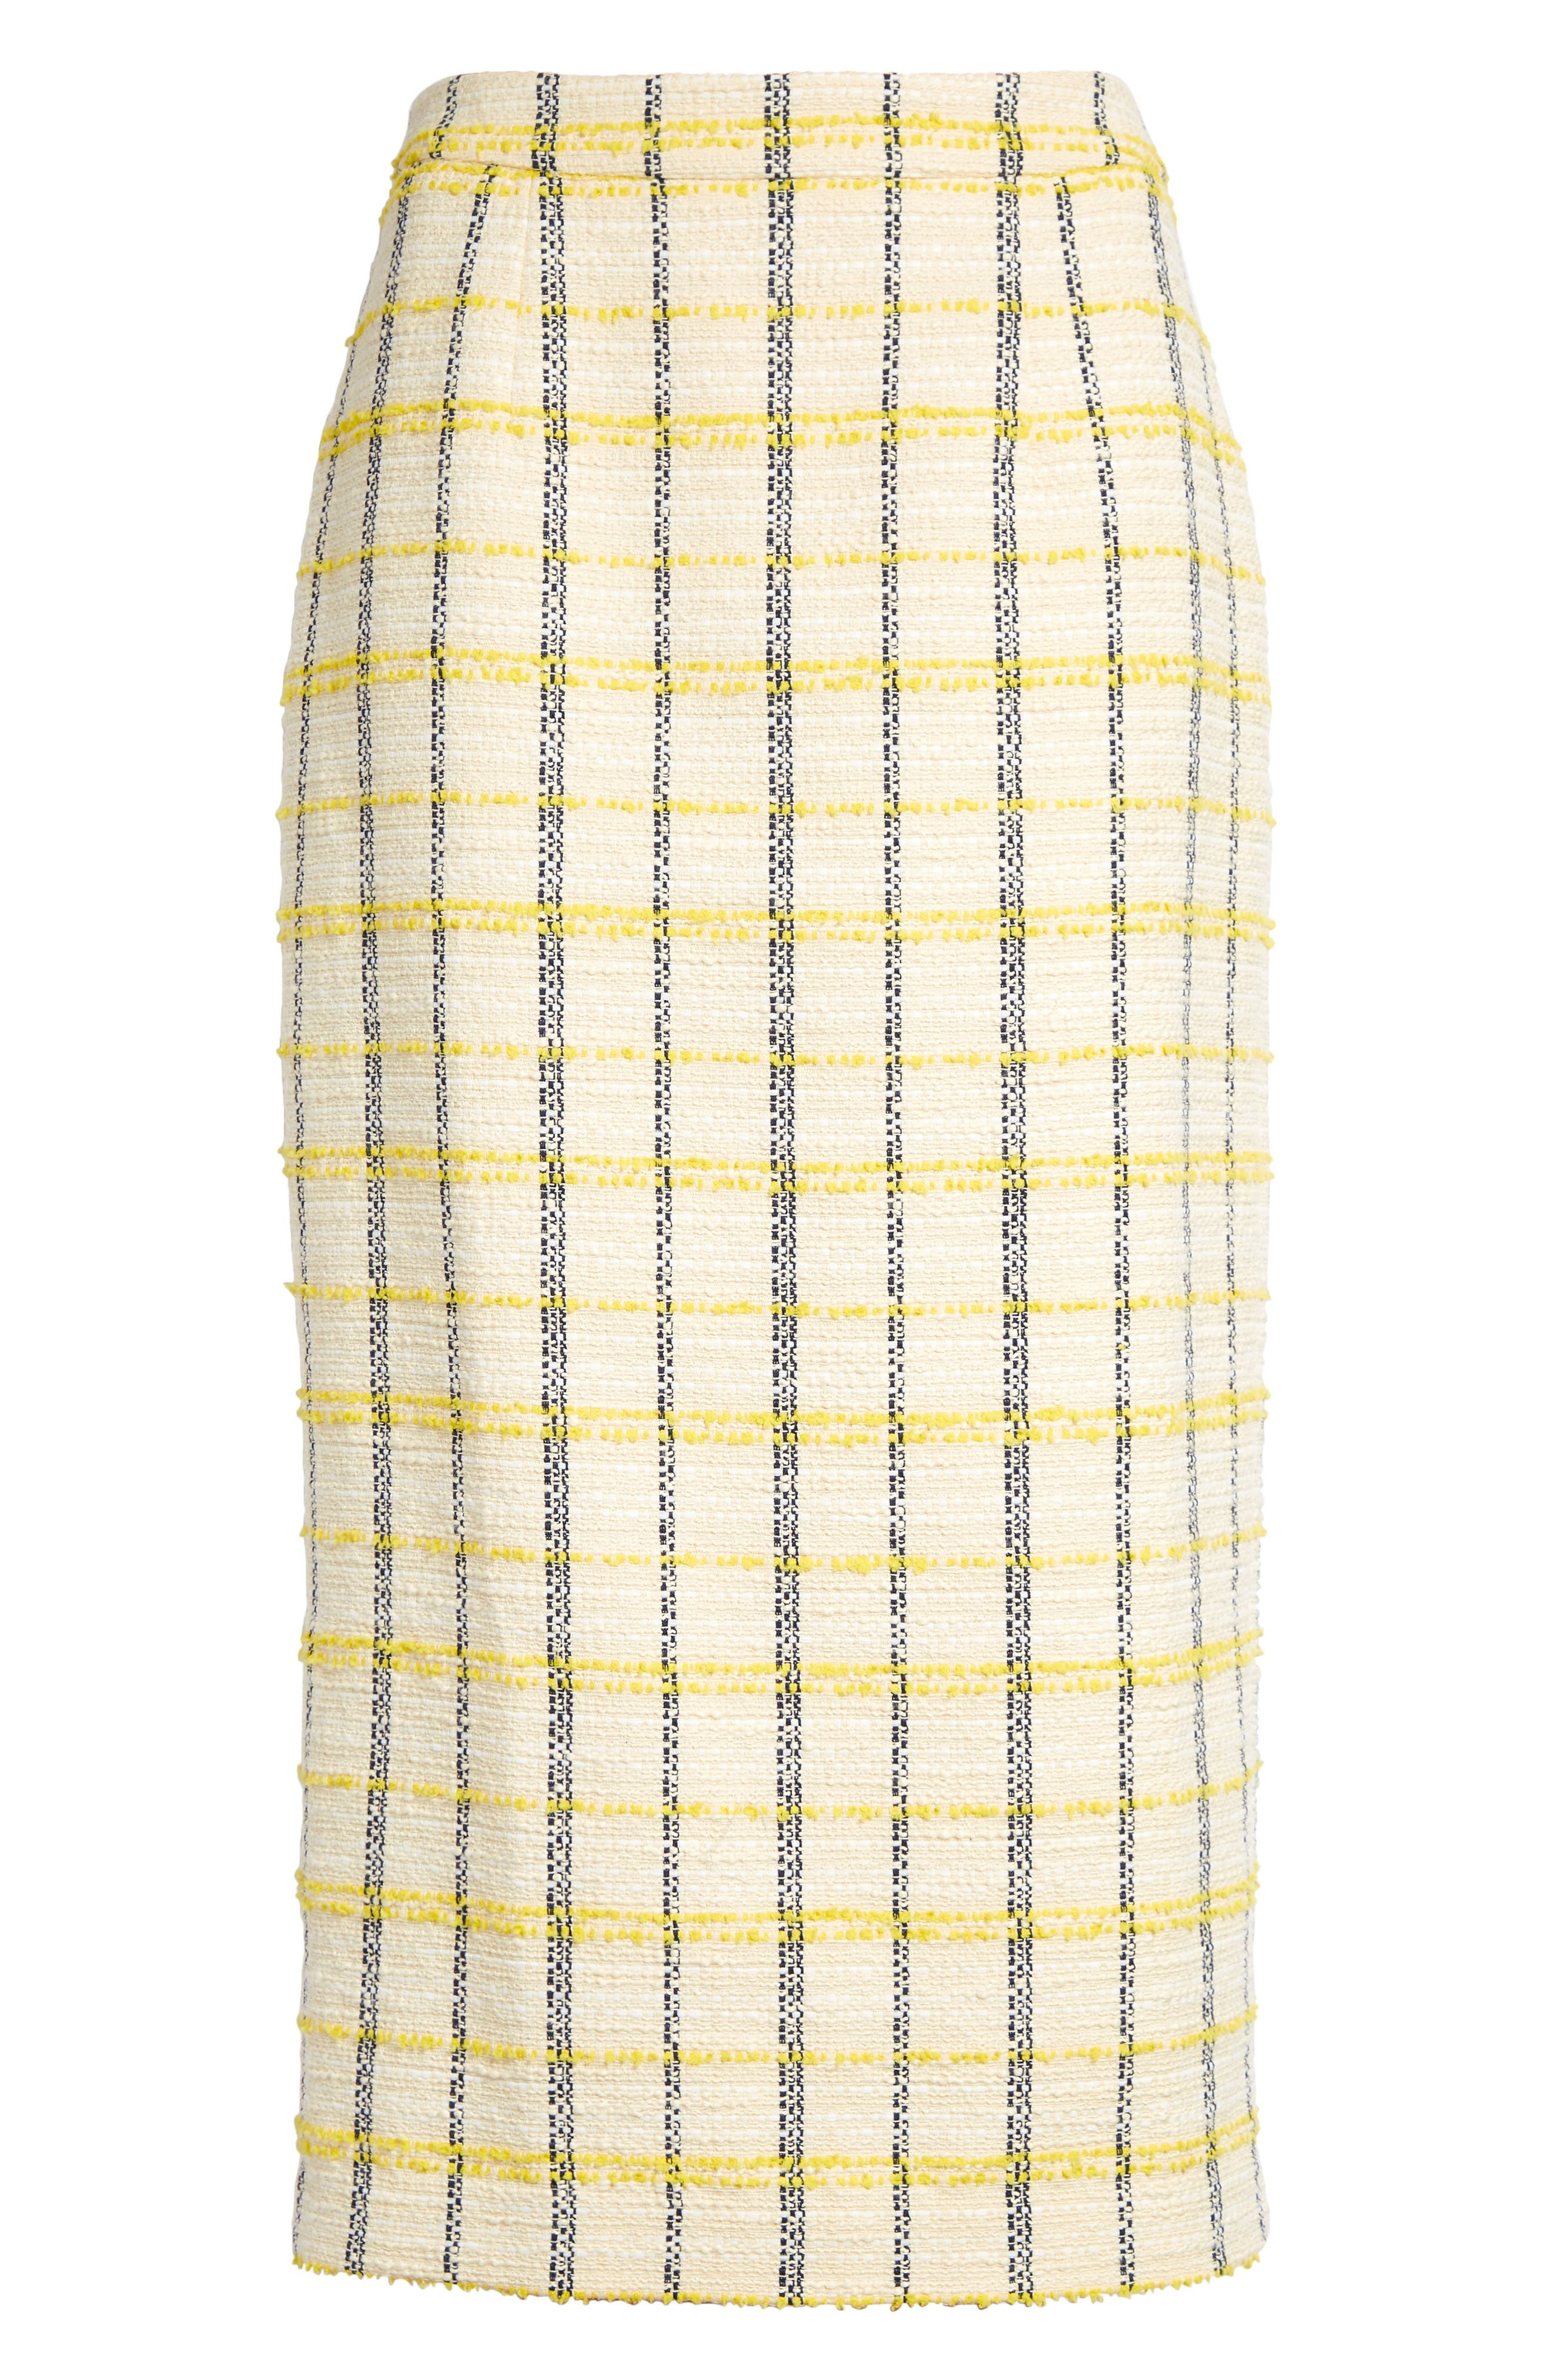 Recharge your power wardrobe with this figure-elongating suit skirt in richly textured plaid tweed. Style Name: Halogen Plaid Tweed Pencil Skirt (Regular & Petite). Style Number: 5976410. Available in stores.